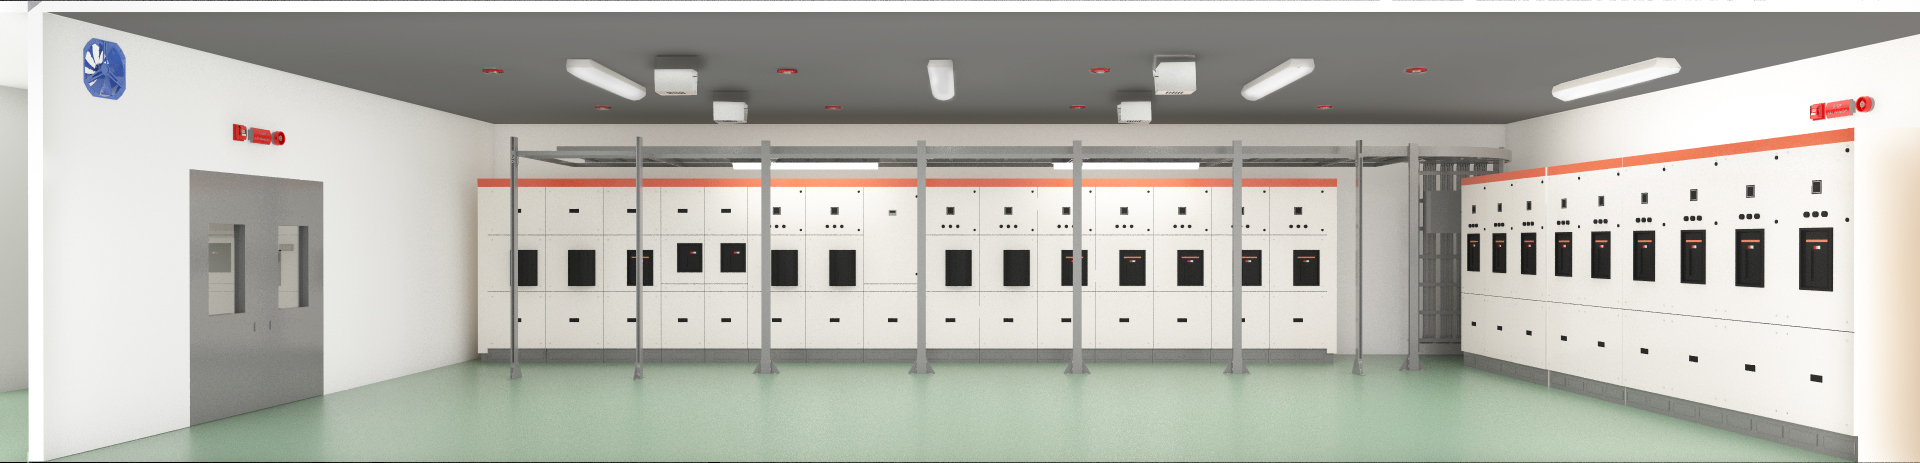 FirePro total flooding system design for electrical room